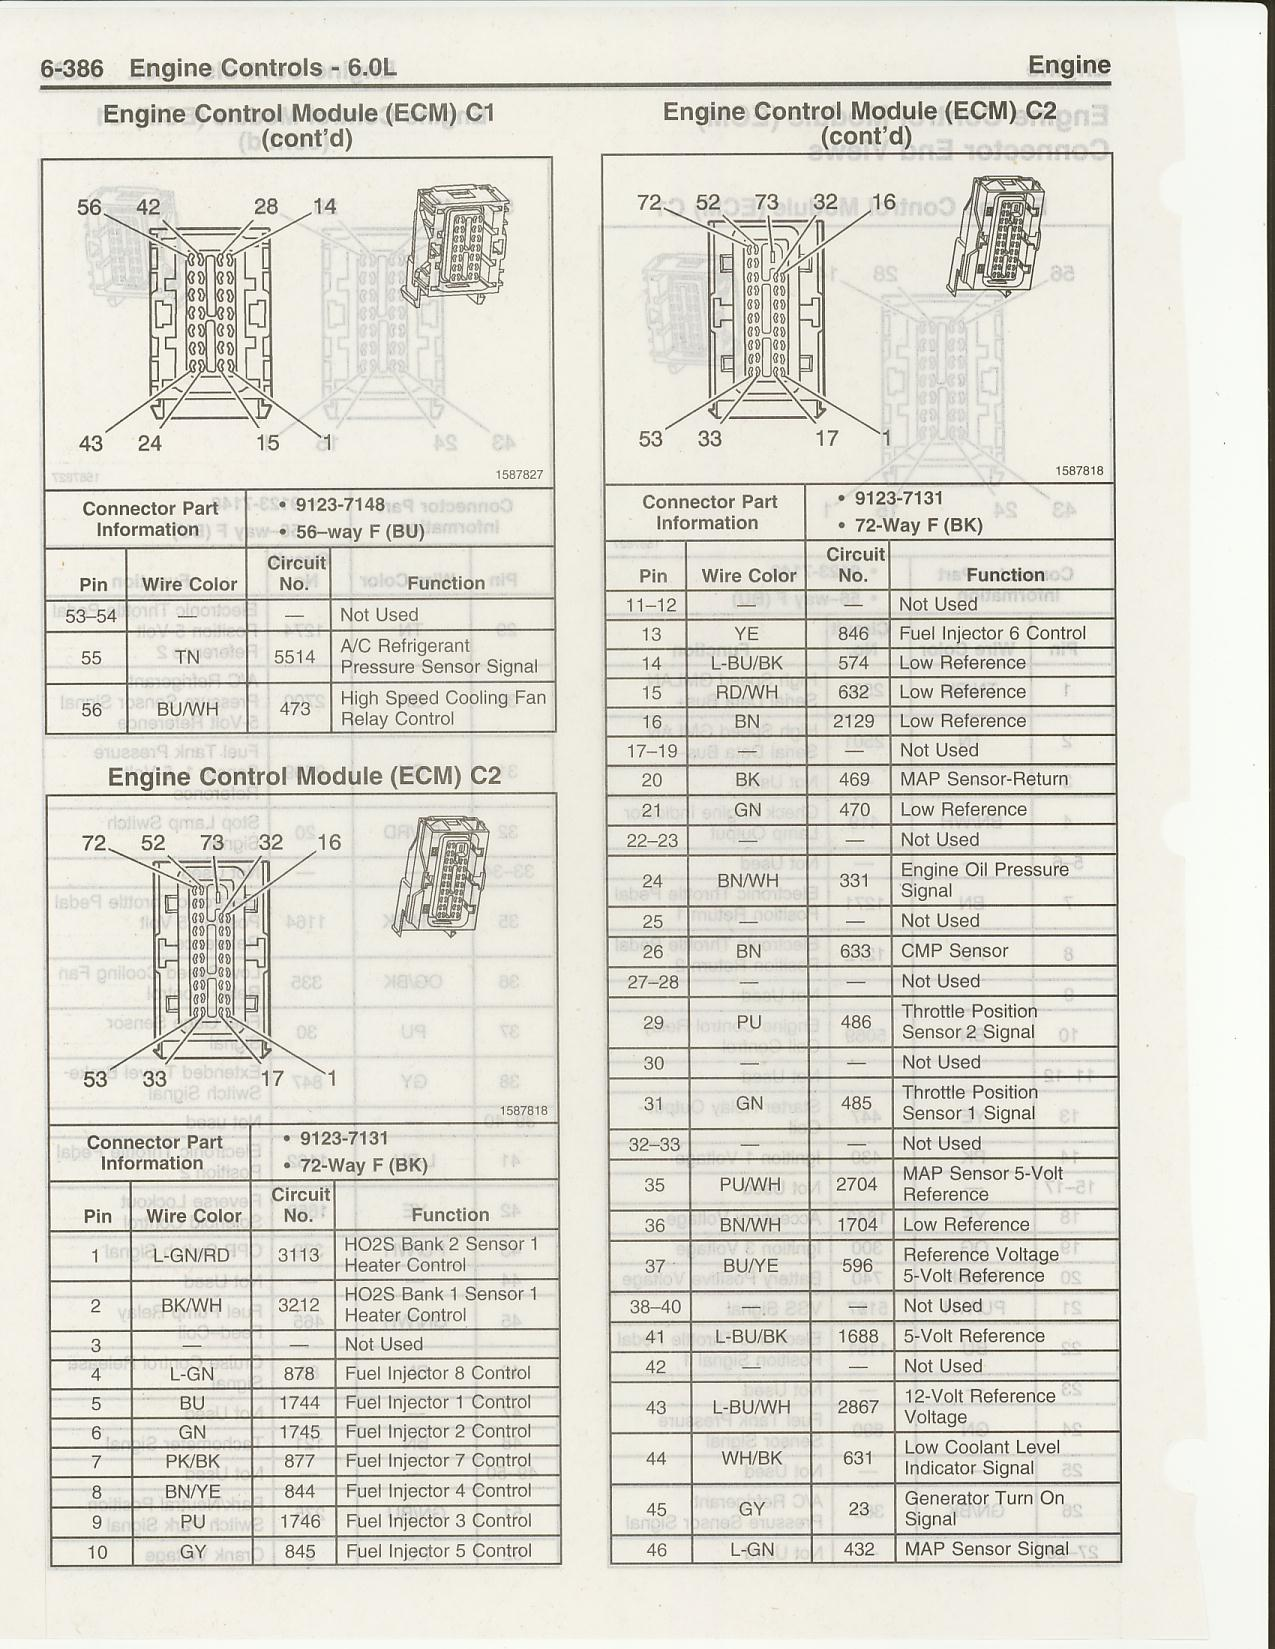 Pinouts and wiring diagrams - Page 4 - LS1TECH - Camaro and Firebird on fuel injector engine diagram, electronic fuel injector diagram, fuel injection wiring harness, fuel injector wiring harness, fuel injector assembly drawing, fuel injector tools, diesel fuel injector diagram, fuel injector parts diagram, fuel injector schematic, fuel injector accessories, fuel injector wire, fuel injector service, fuel injection diagram, ford fuel injector diagram, fuel injector design, fuel injector flow bench, circuit diagram, fuel injector system, bosch fuel injector diagram, fuel injector wiring connector,